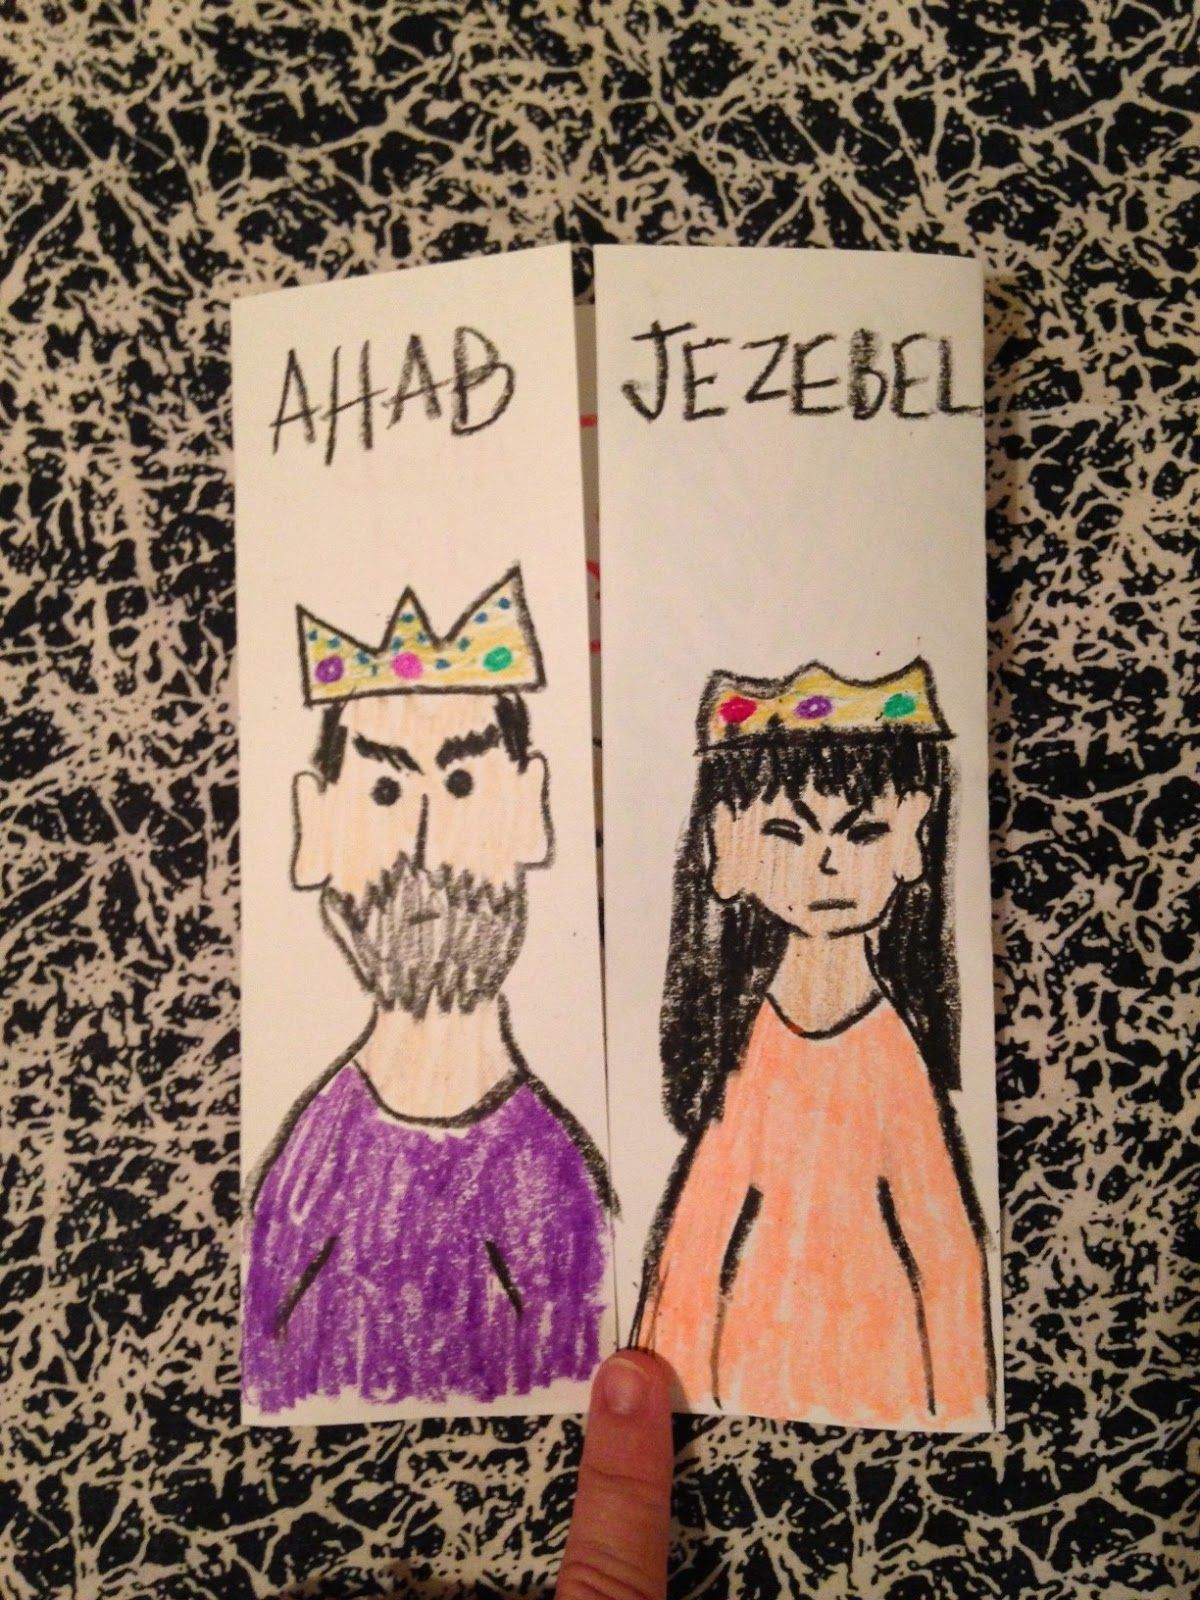 Free coloring pages garden of eden - Printable Colouring Pages See More 1 Kings 16 Ahab And Jezebel Ahab Was The Most Wicked King In Israel